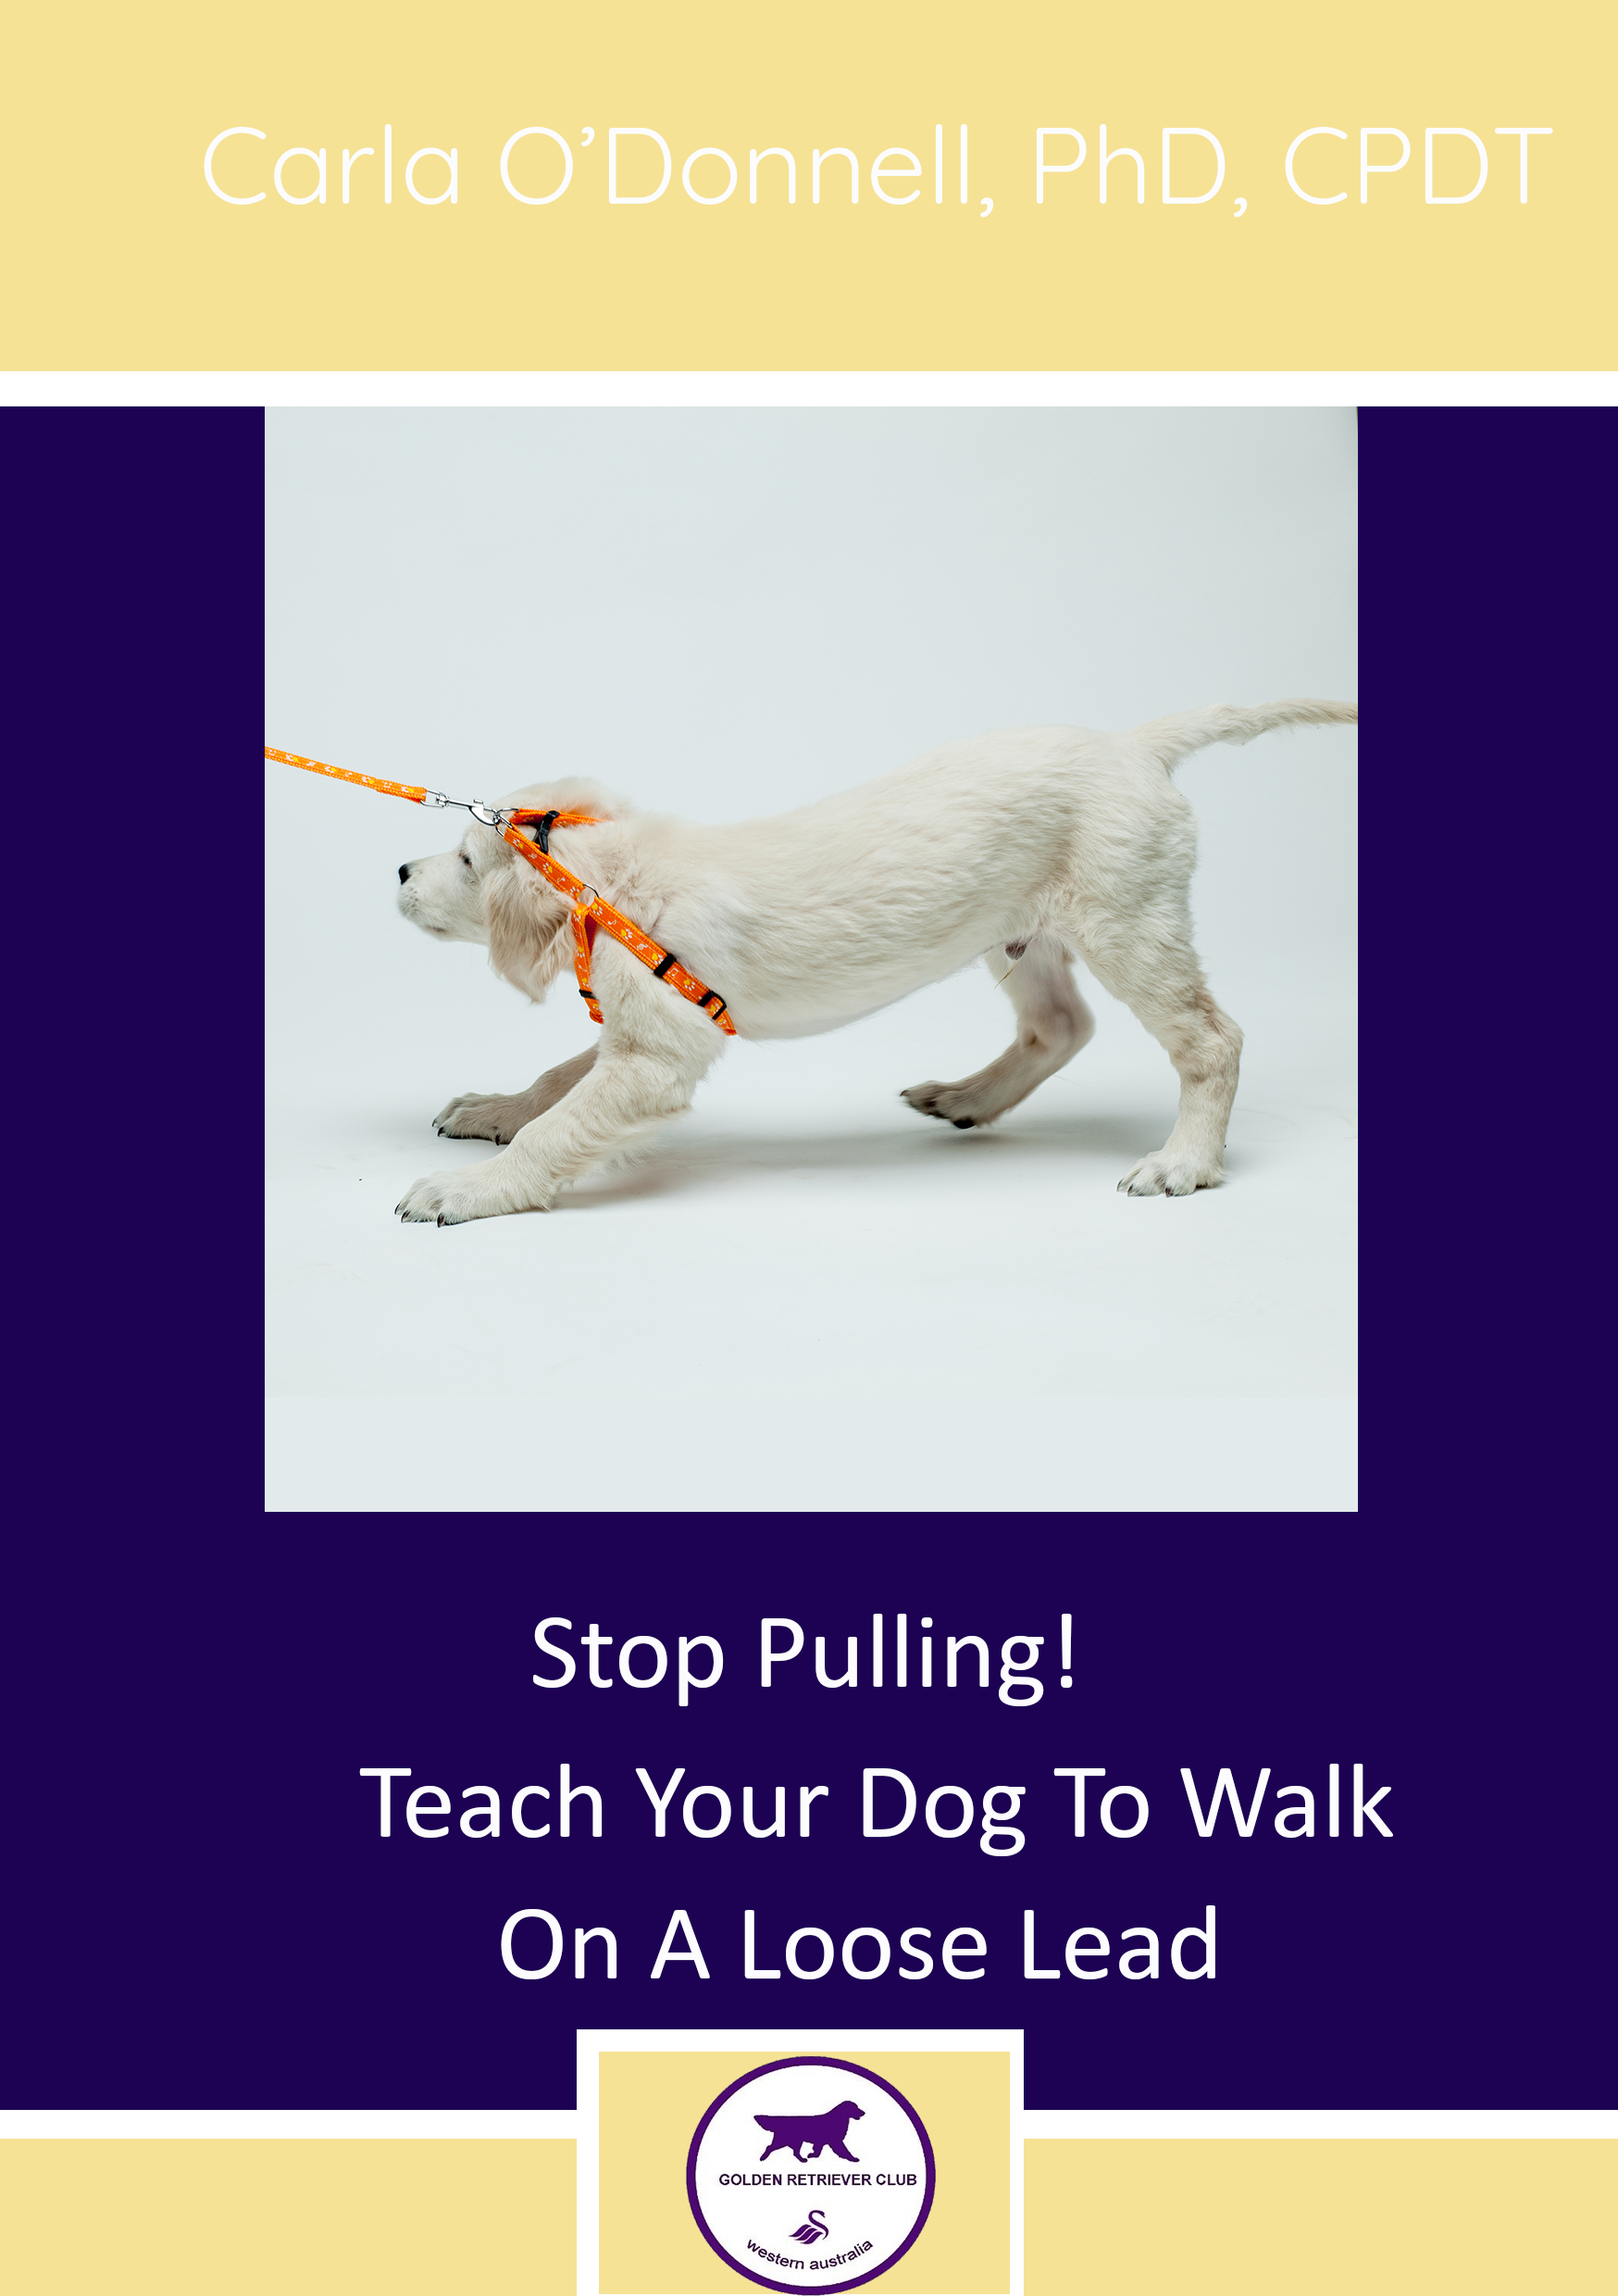 Stop Pulling! Teach Your Dog To Walk On A Loose Lead